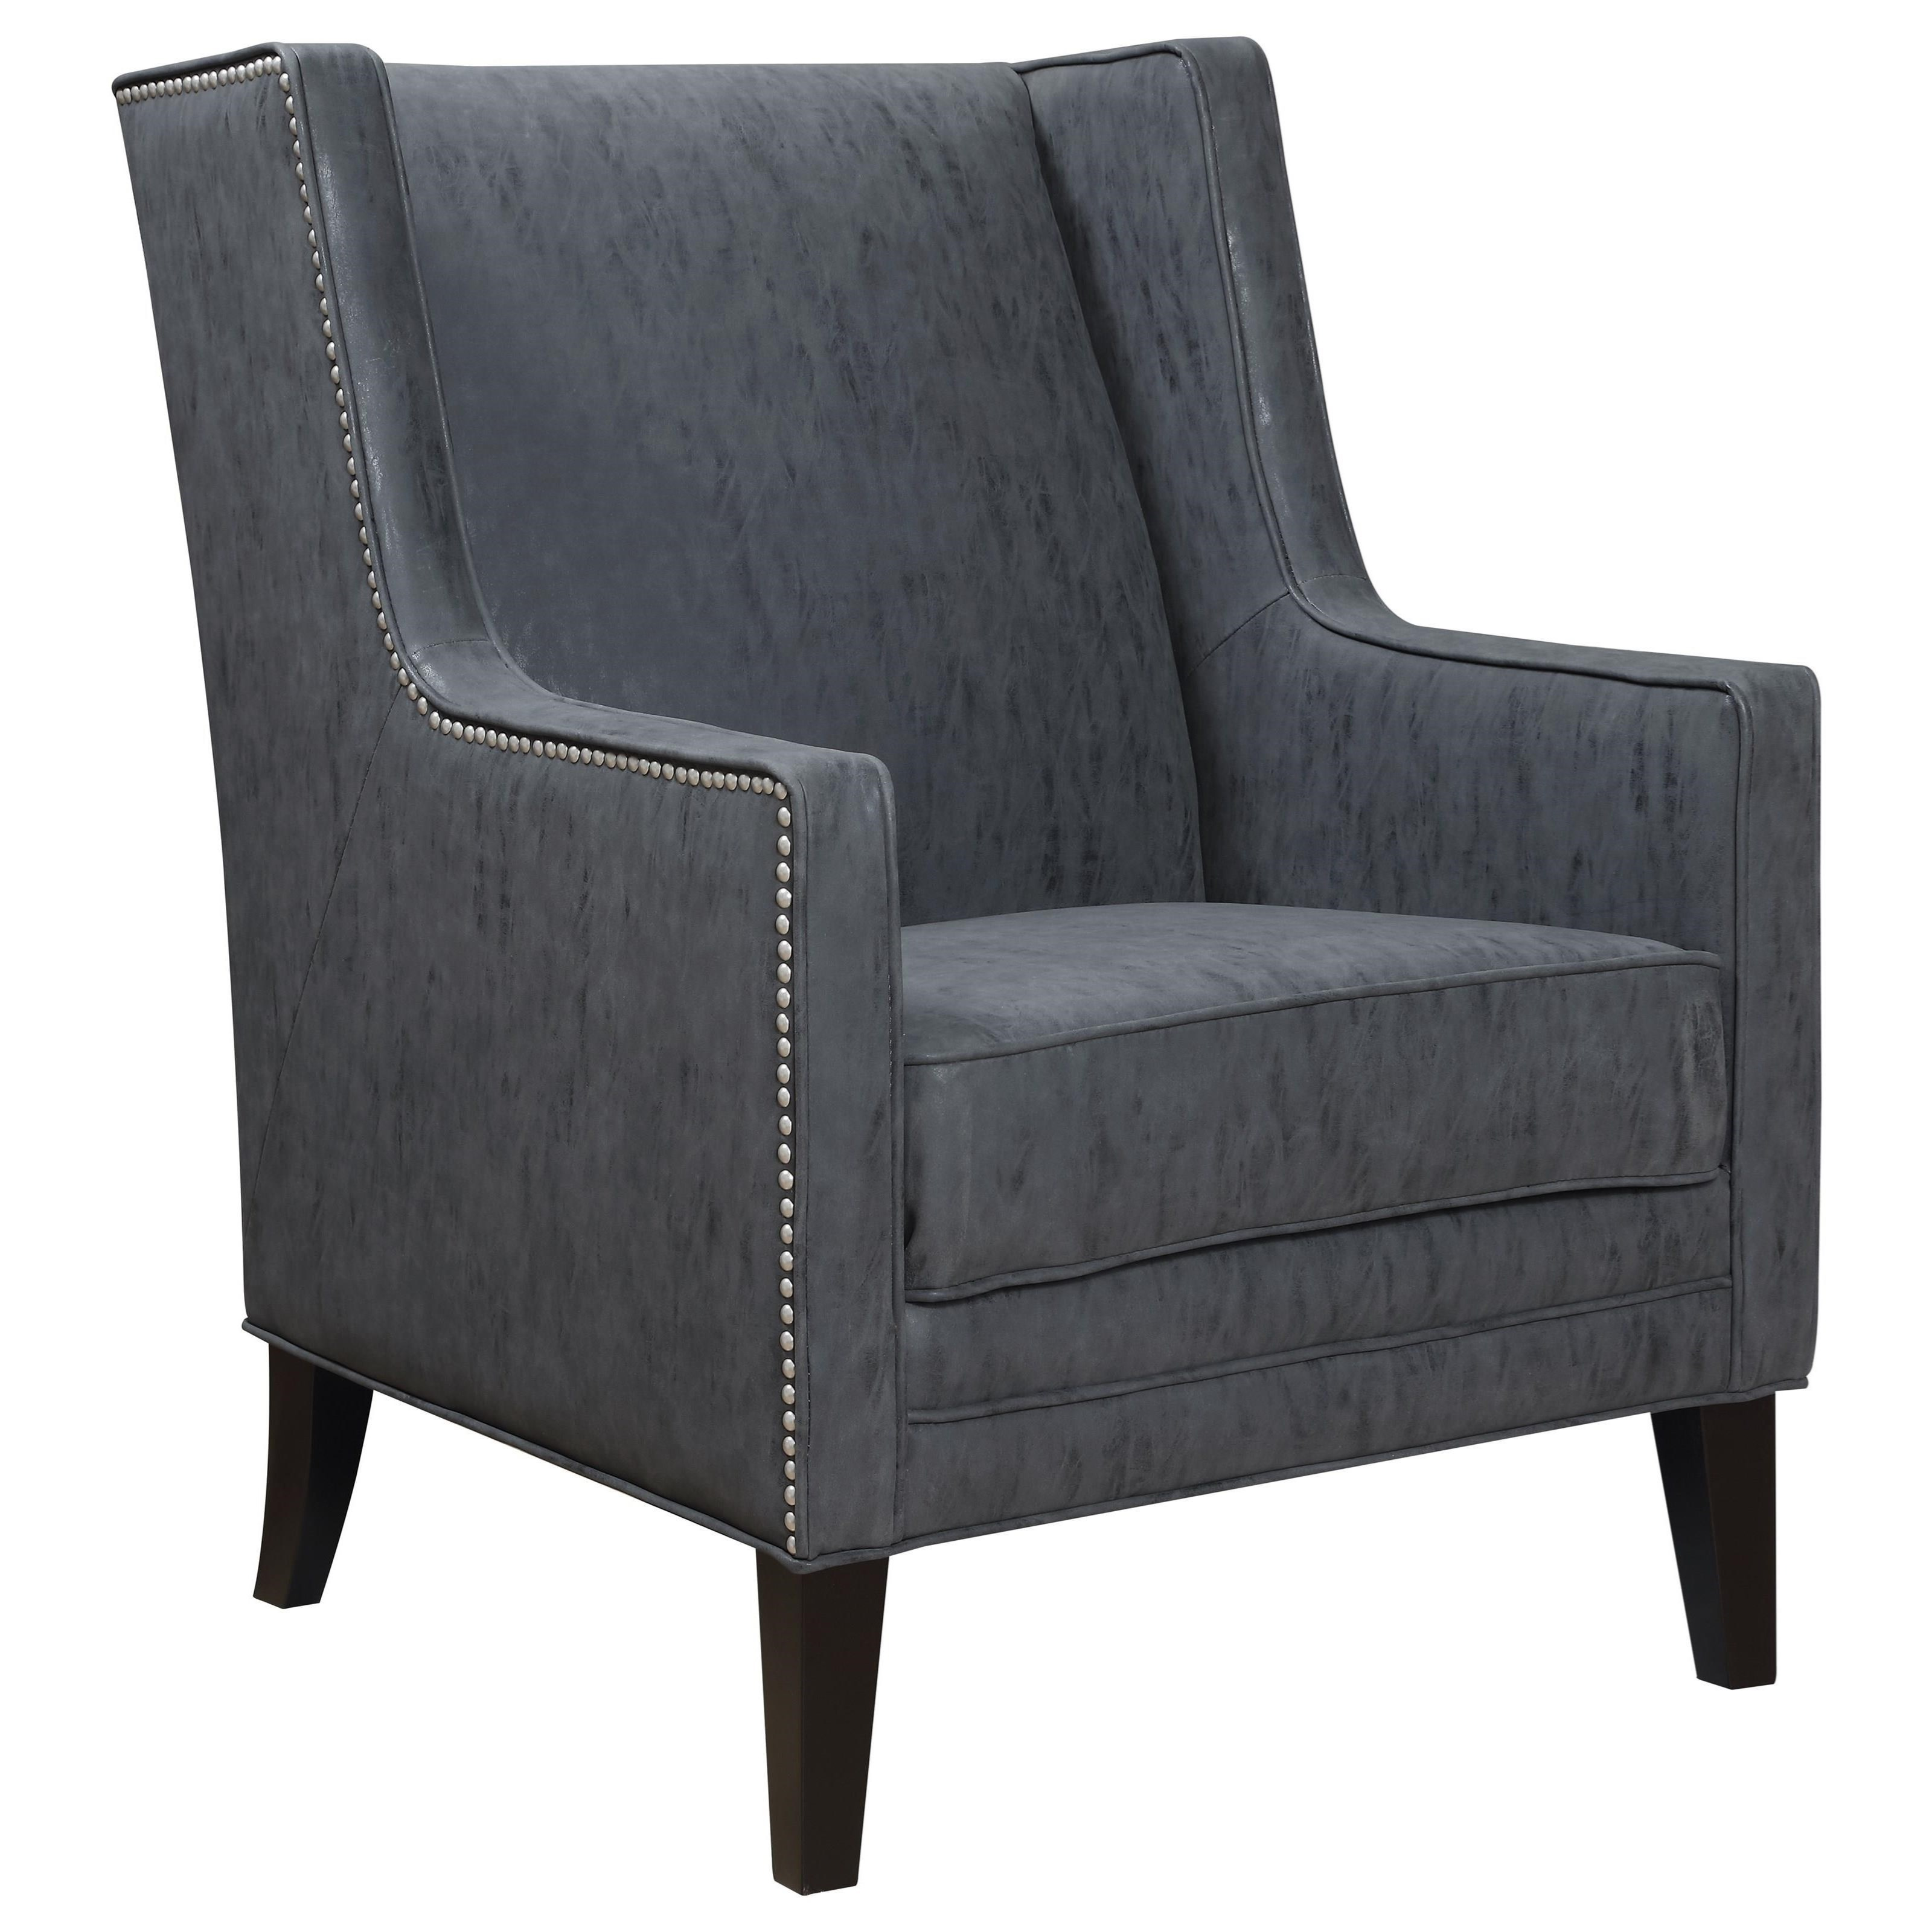 Donny Osmond Home Accent Seating Accent Chair - Item Number: 902988